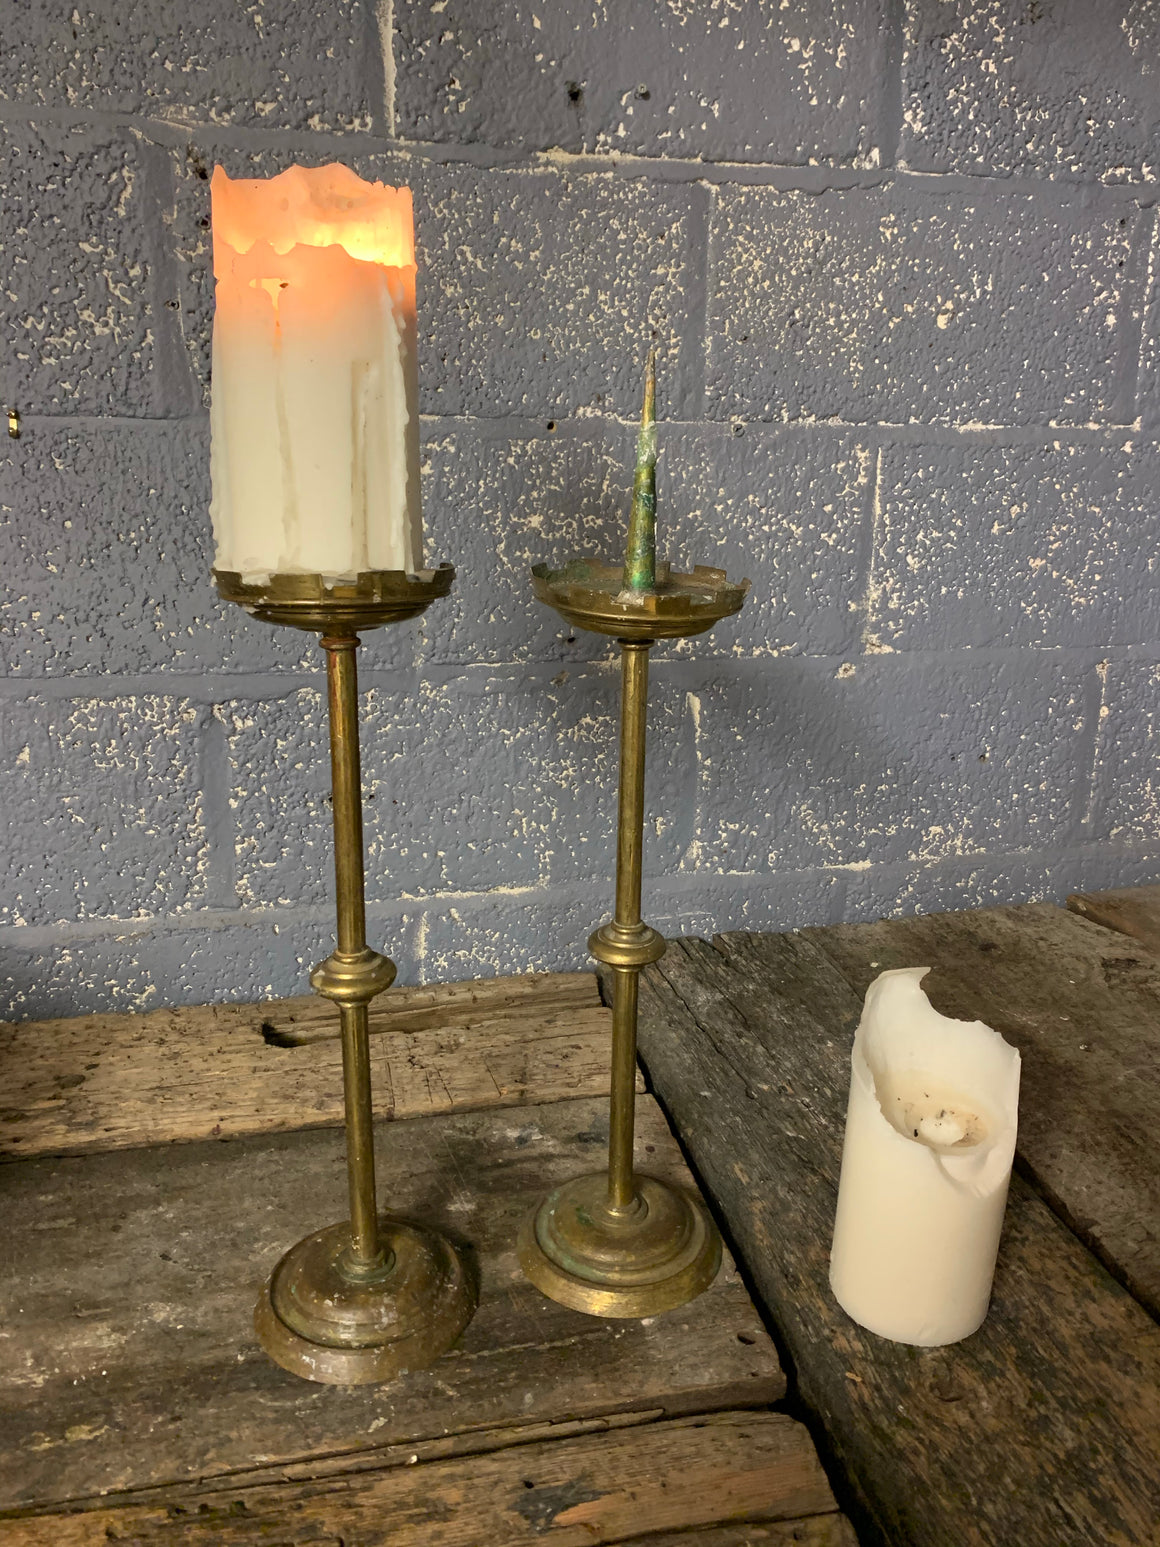 A large pair of tall Gothic church pricket candlesticks